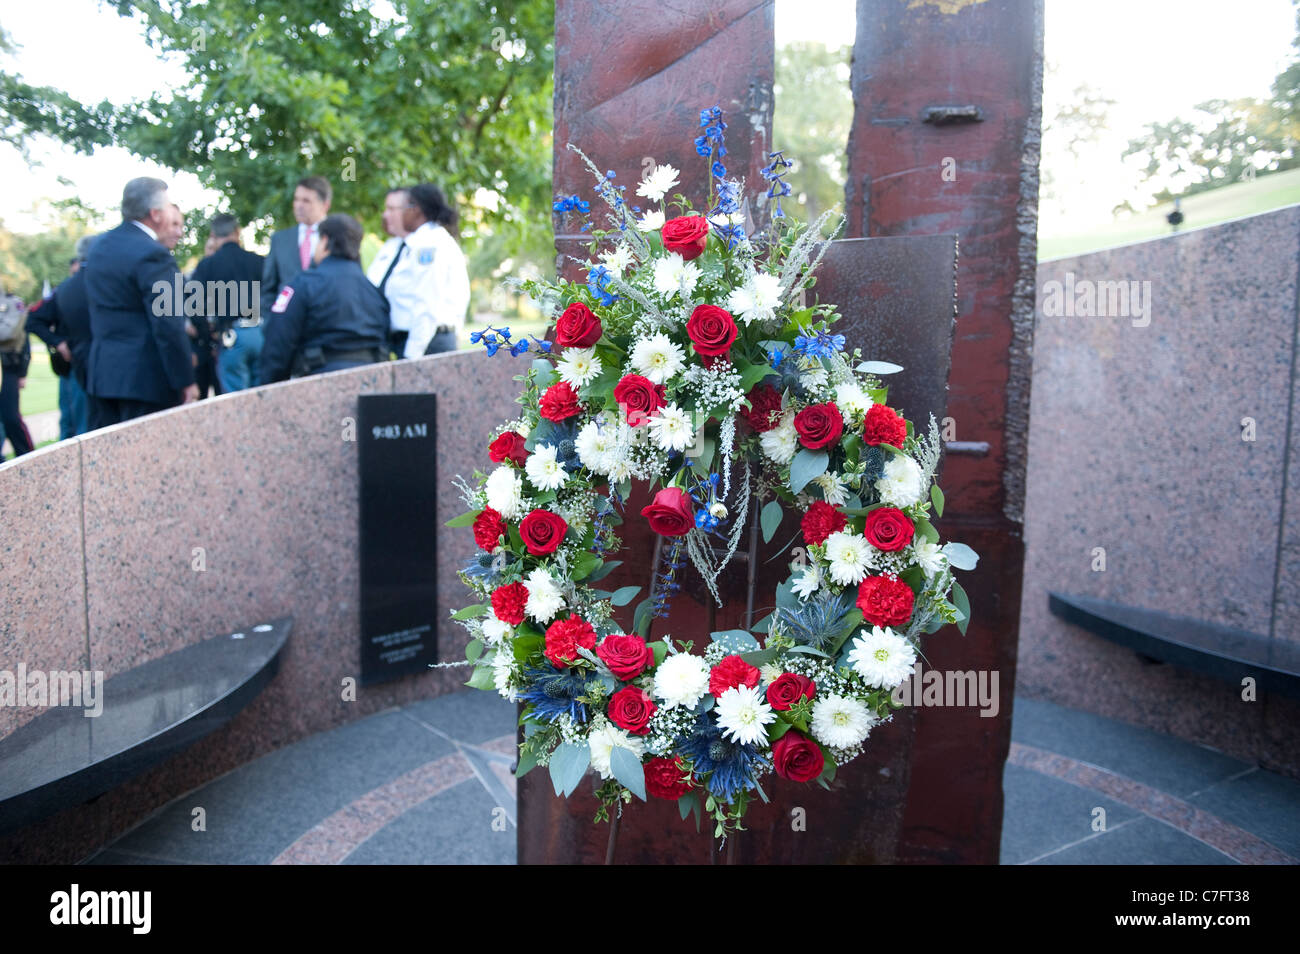 Red white and blue flower arrangement in front of twin towers stock red white and blue flower arrangement in front of twin towers monument at a 911 memorial service at the texas state cemetery izmirmasajfo Gallery